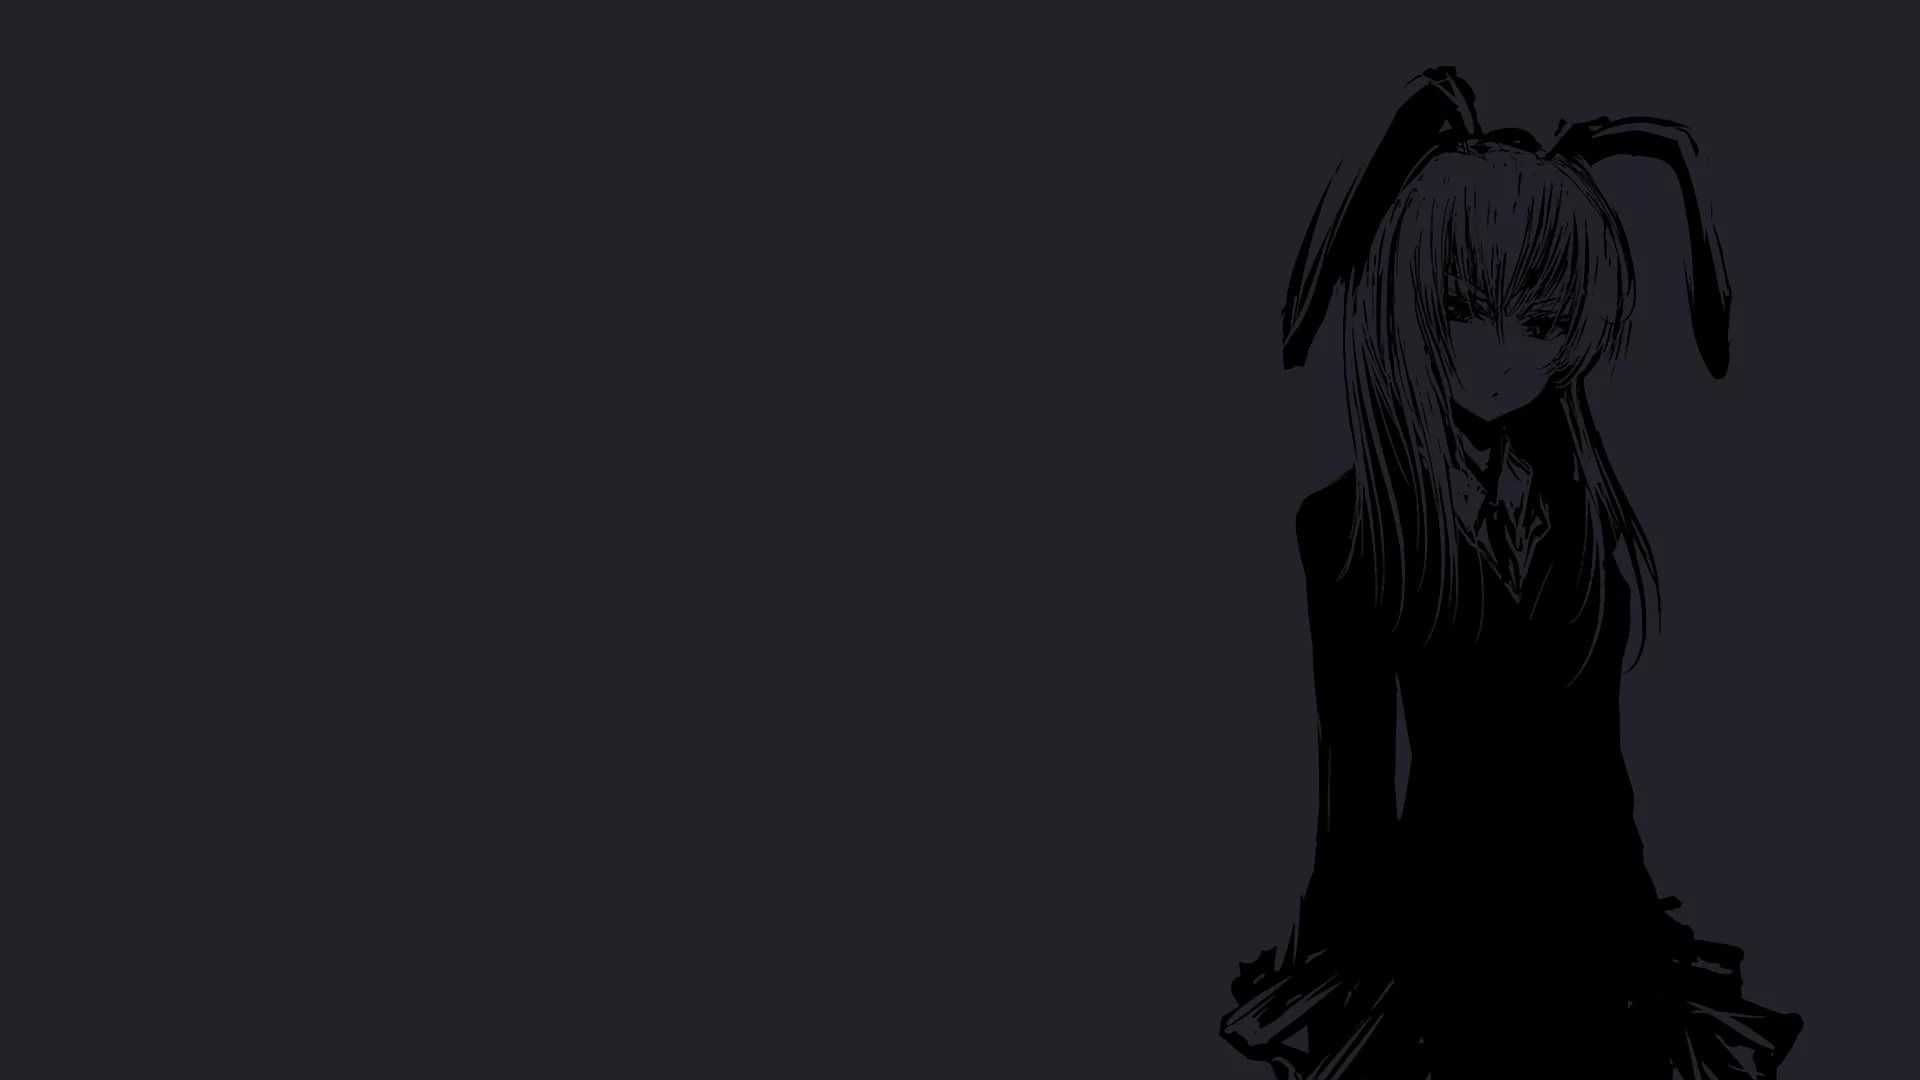 Dark Anime Wallpapers 30 Images Wallpaperboat